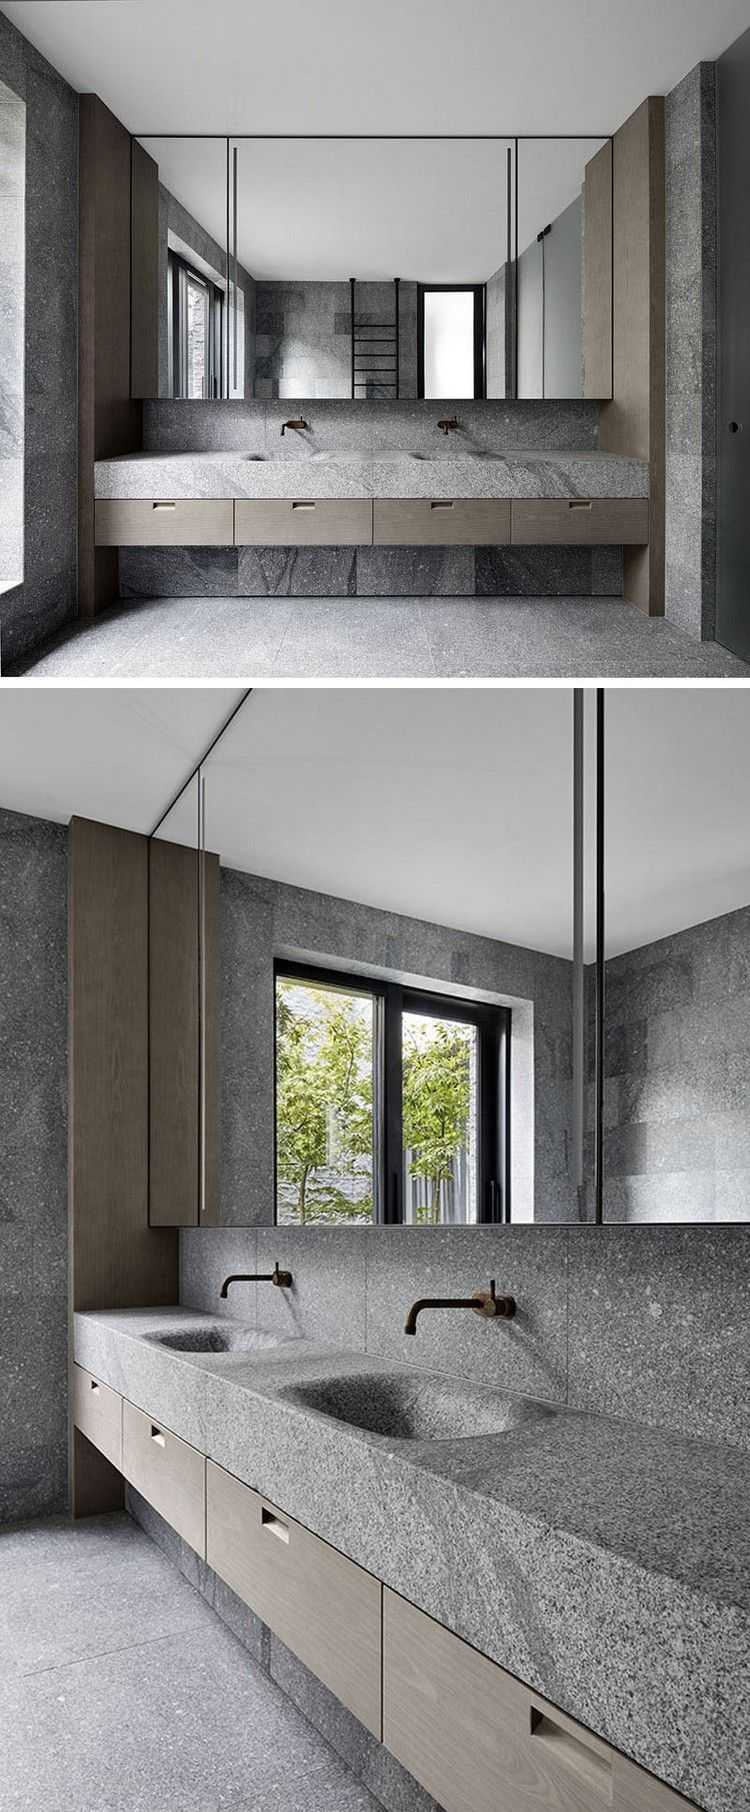 bad design granit waschtisch naturstein modern architektur architecture facade interior. Black Bedroom Furniture Sets. Home Design Ideas